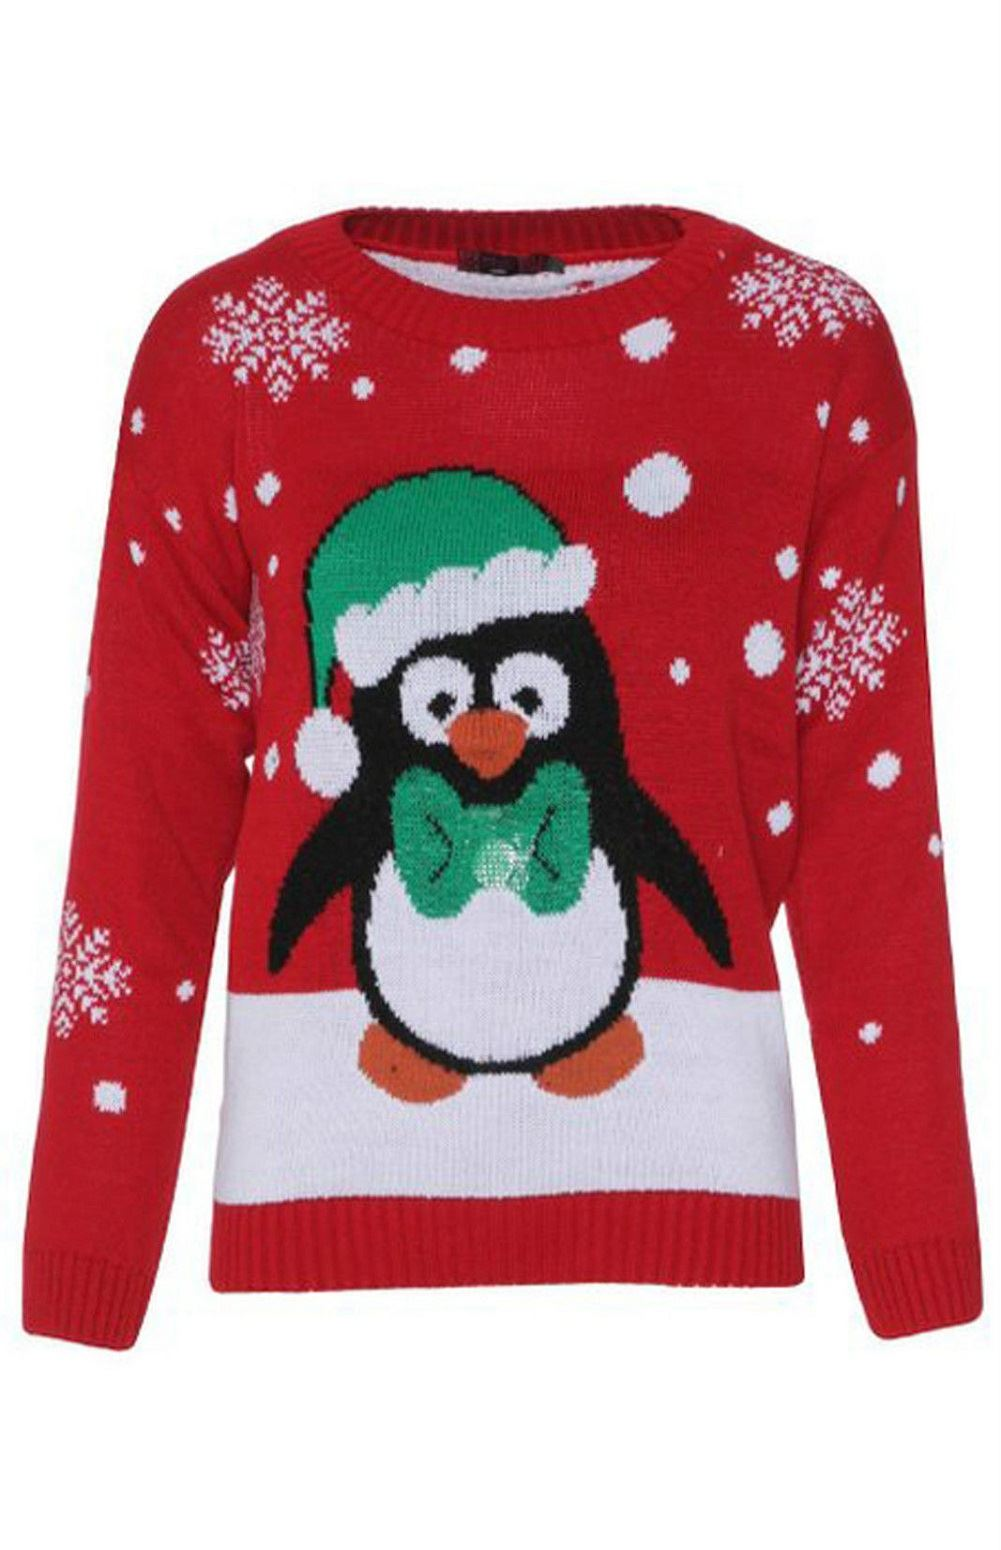 Browse a wide variety of Christmas Jumpers featuring reindeer, snowman, robin, fairisle & 3D designs. We have novelty and funny jumpers as well light up jumpers for something that truly stands out. Choose from kids, men's and women's jumpers in a range of sizes.